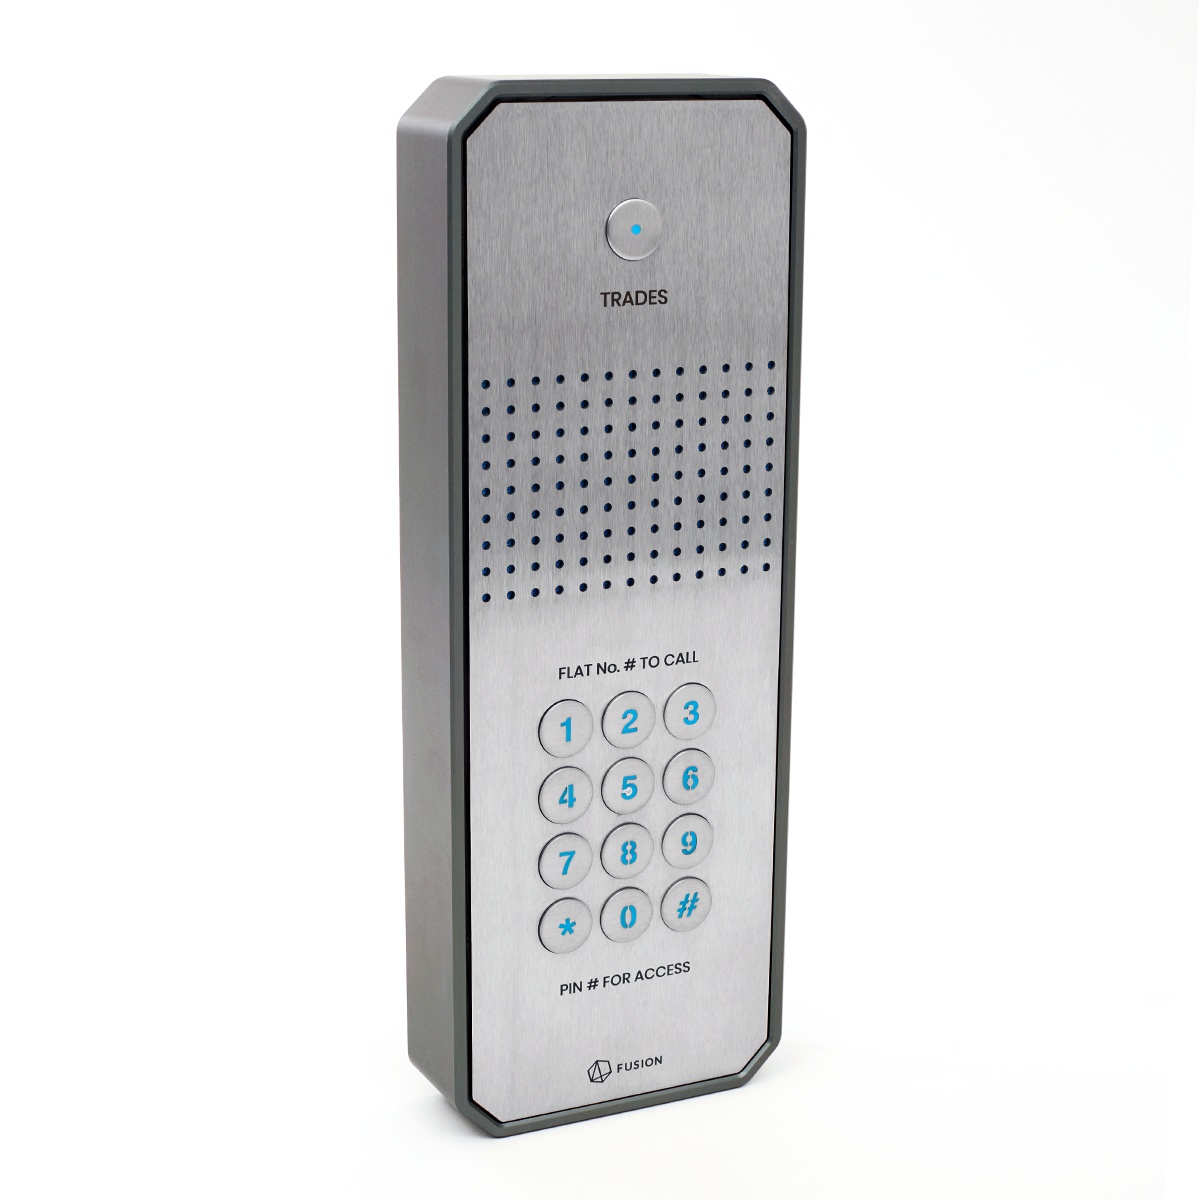 [FUSION] Premium 3G/4G GSM Intercom & Remote Entry System for Multiple Properties